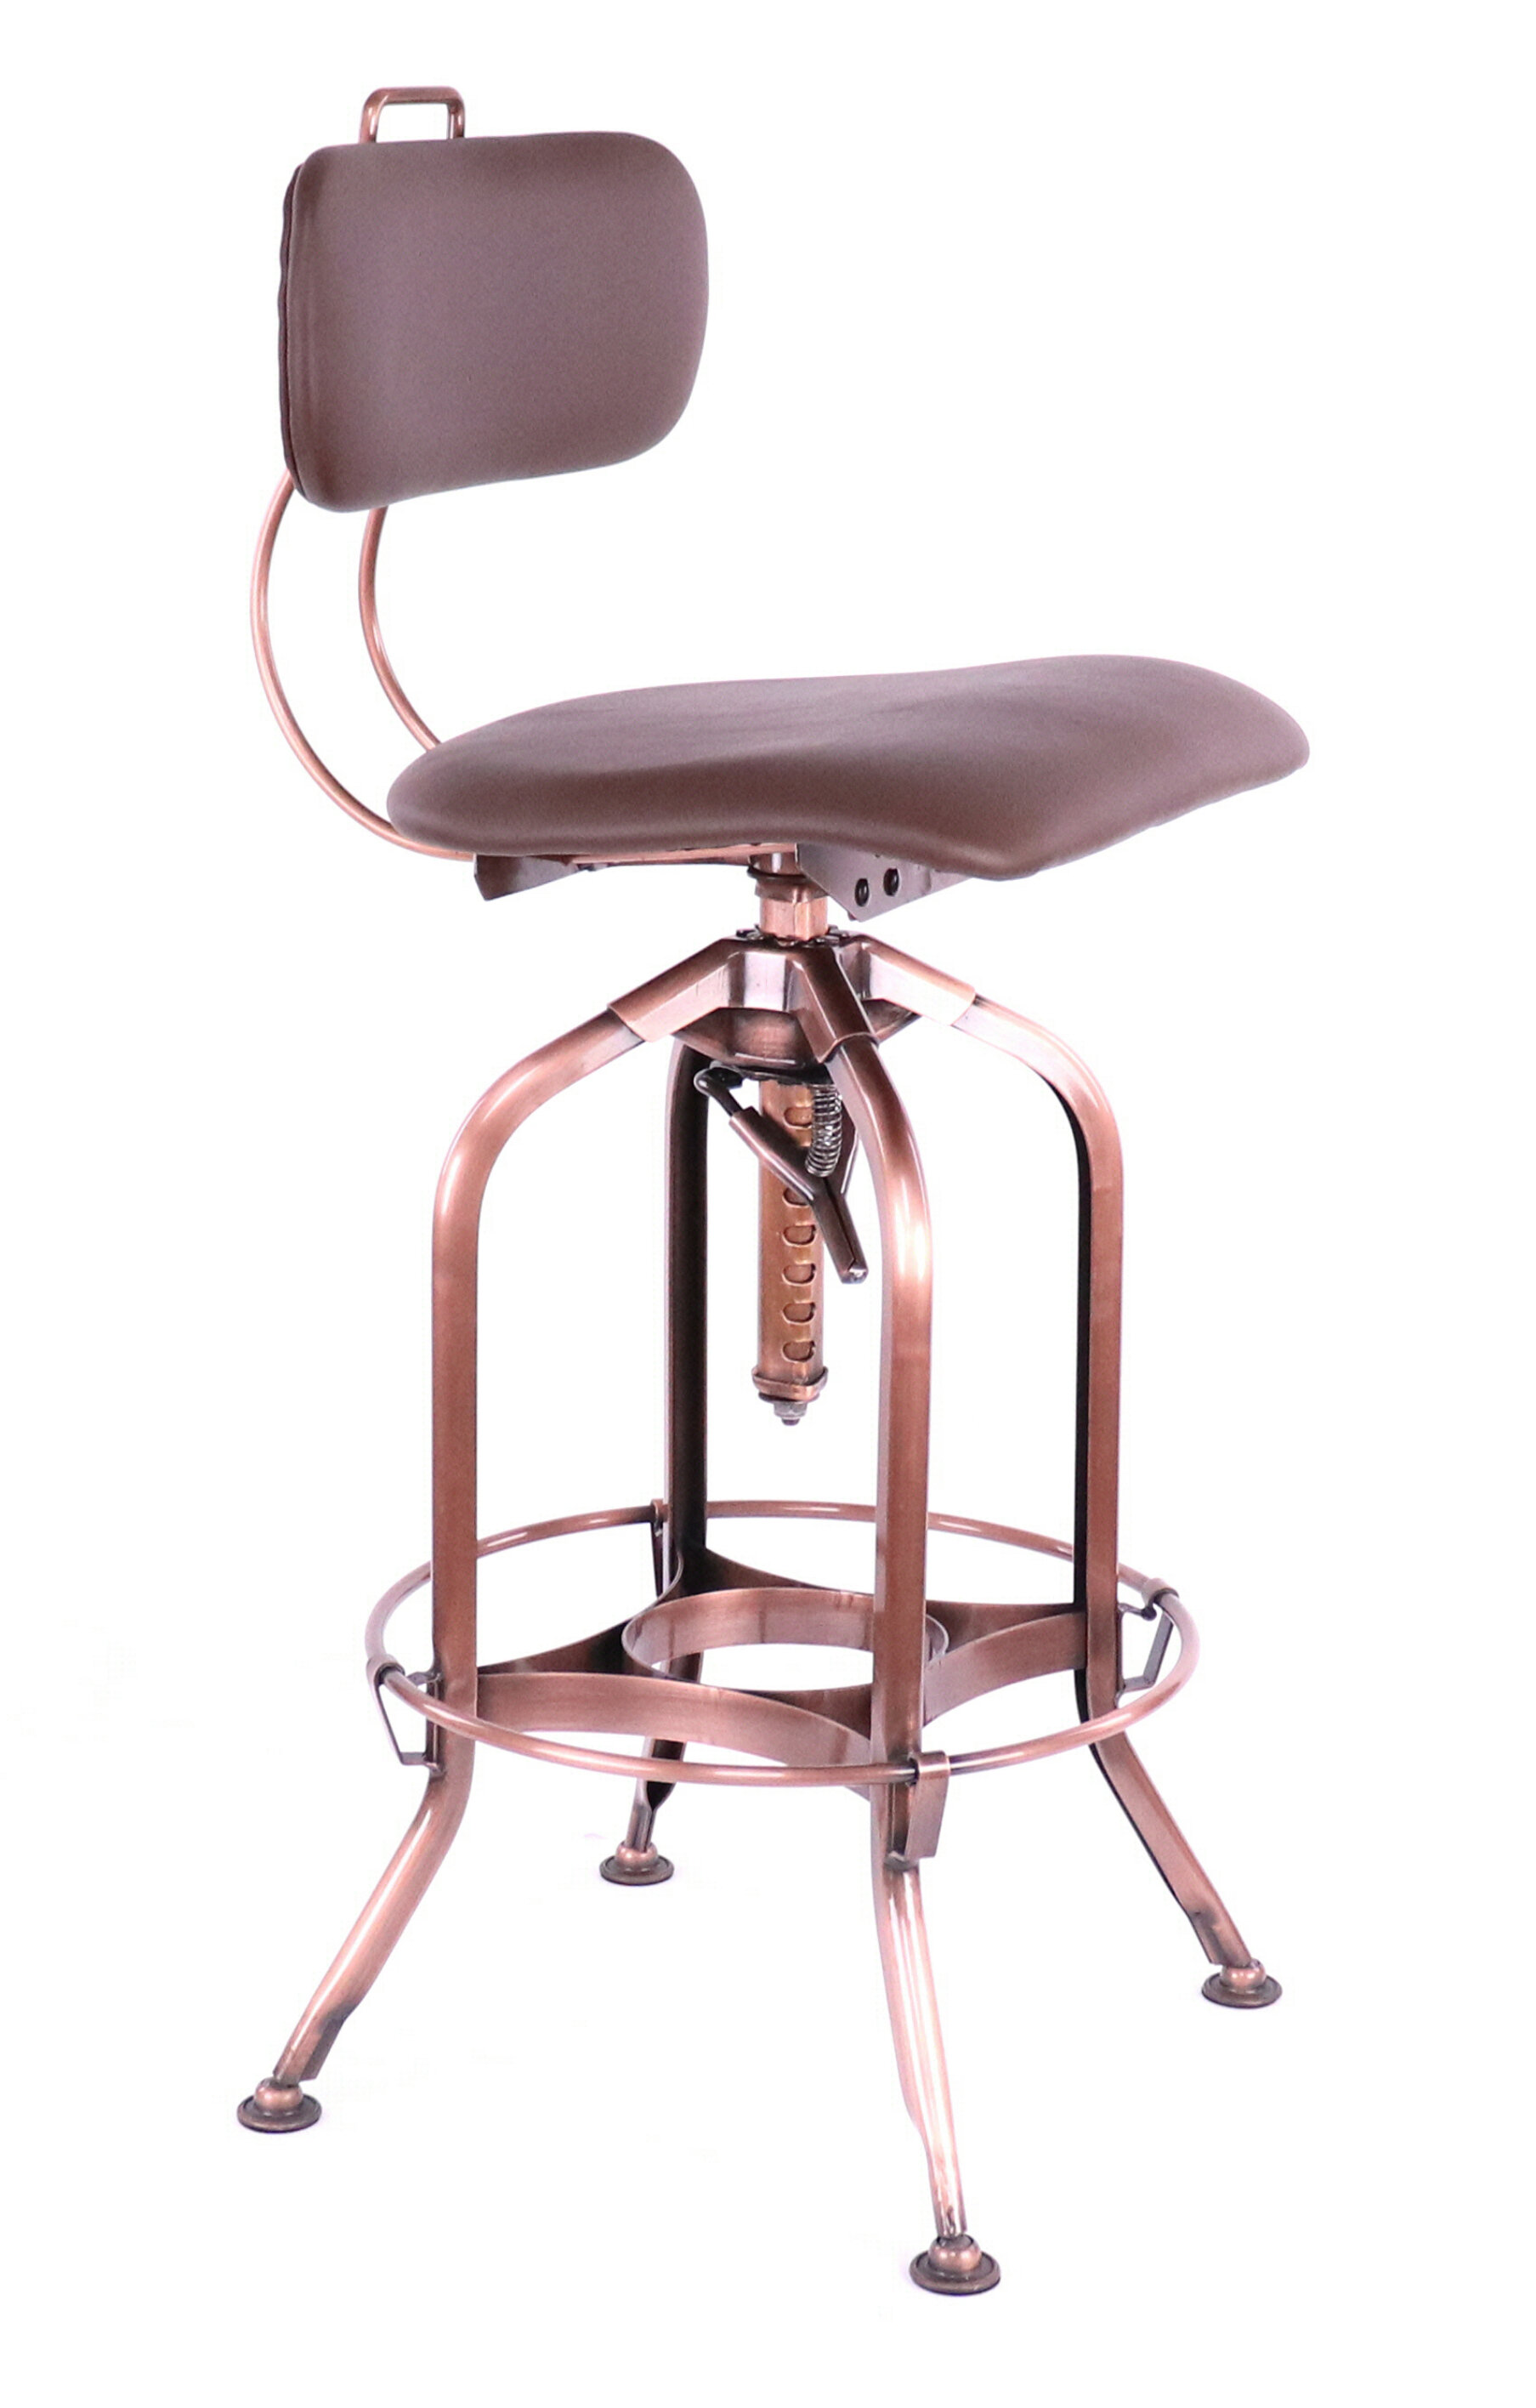 Copper Saddle Seat Bar Stools Counter Stools You Ll Love In 2021 Wayfair